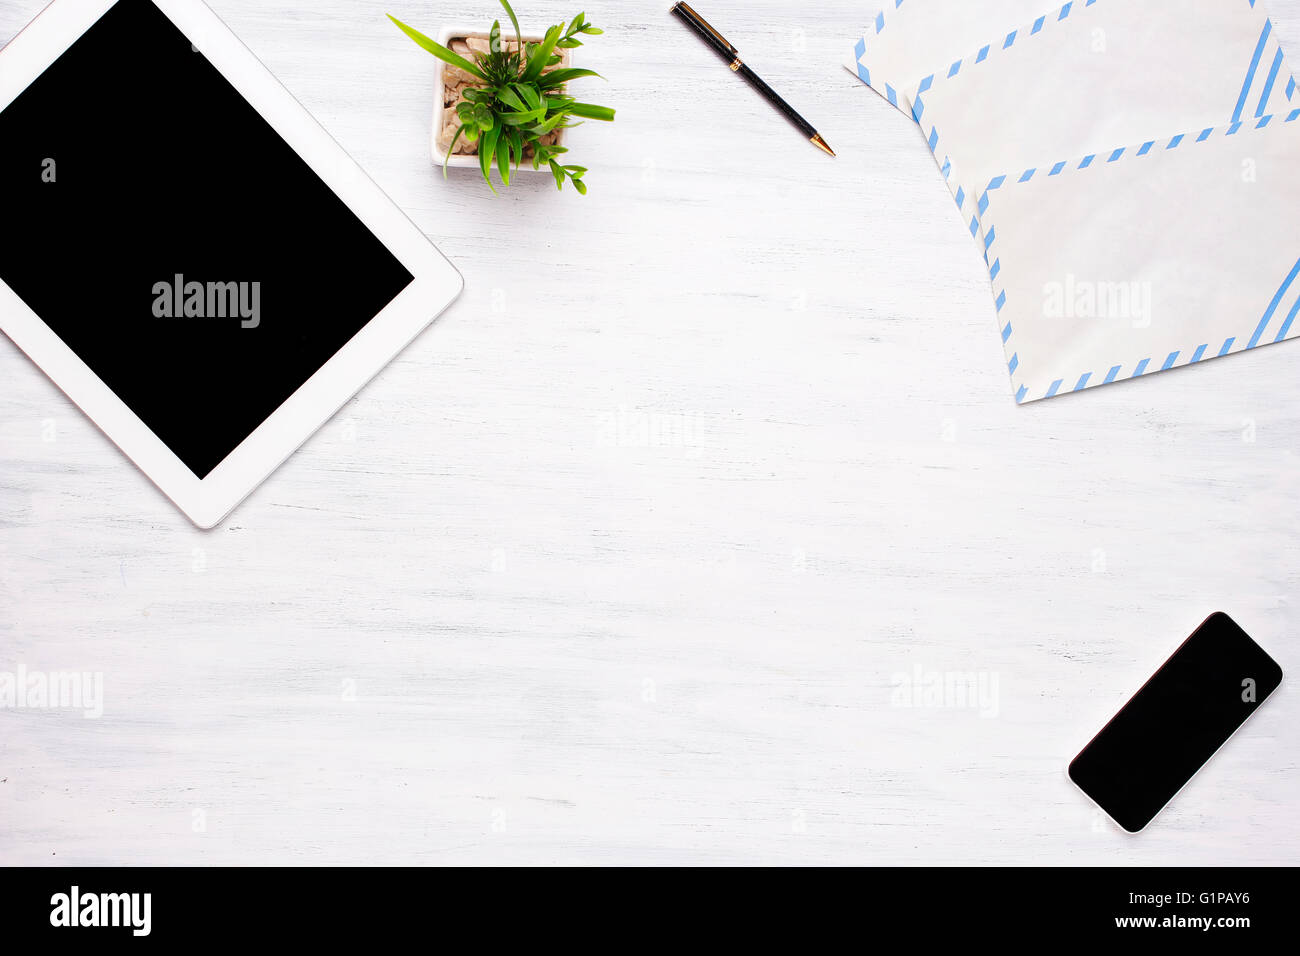 home office items. Top View Of A Tablet Computer, Smartphone And Office Items On White Wooden Desk. Home Concept. Business Lifestyle. R